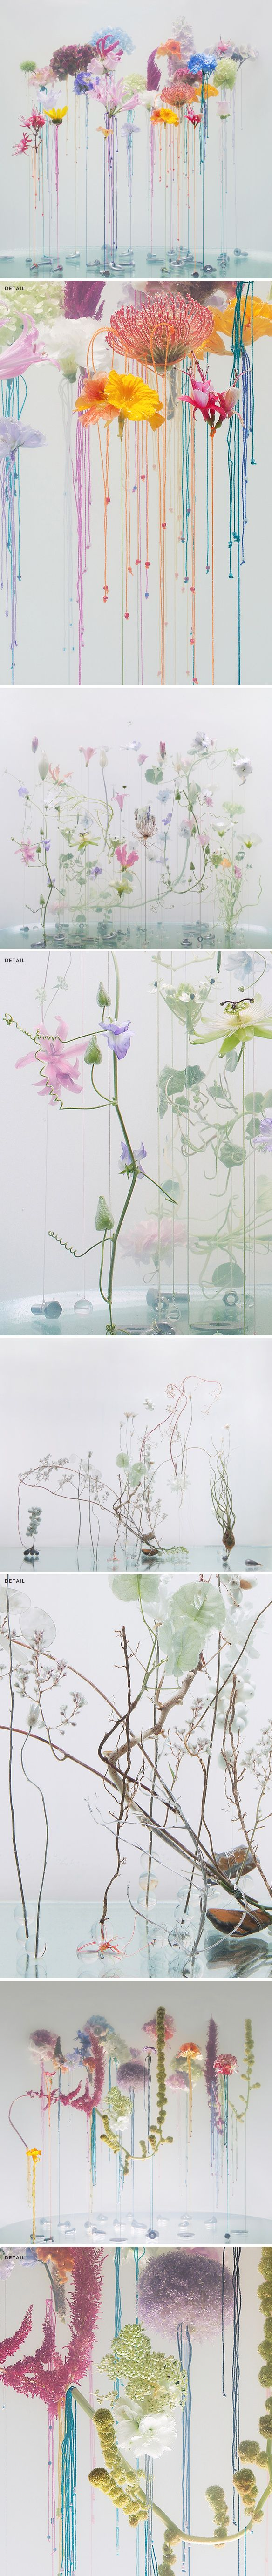 """underwater ballet"" - a new series by anne ten donkelaar <3"